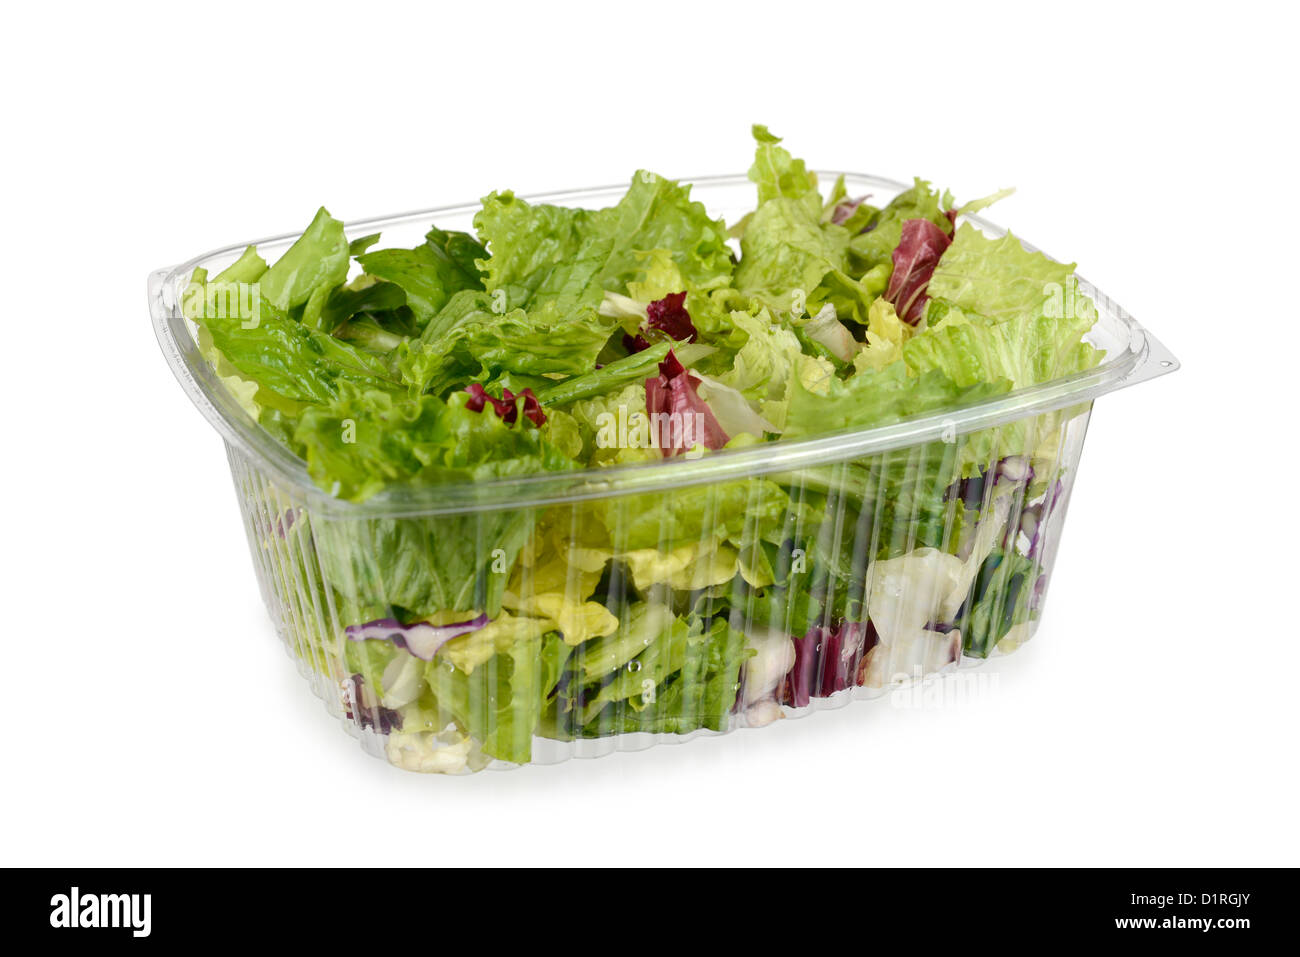 Packaged salad, Plastic container, lettuce leaves, red cabbage - Stock Image